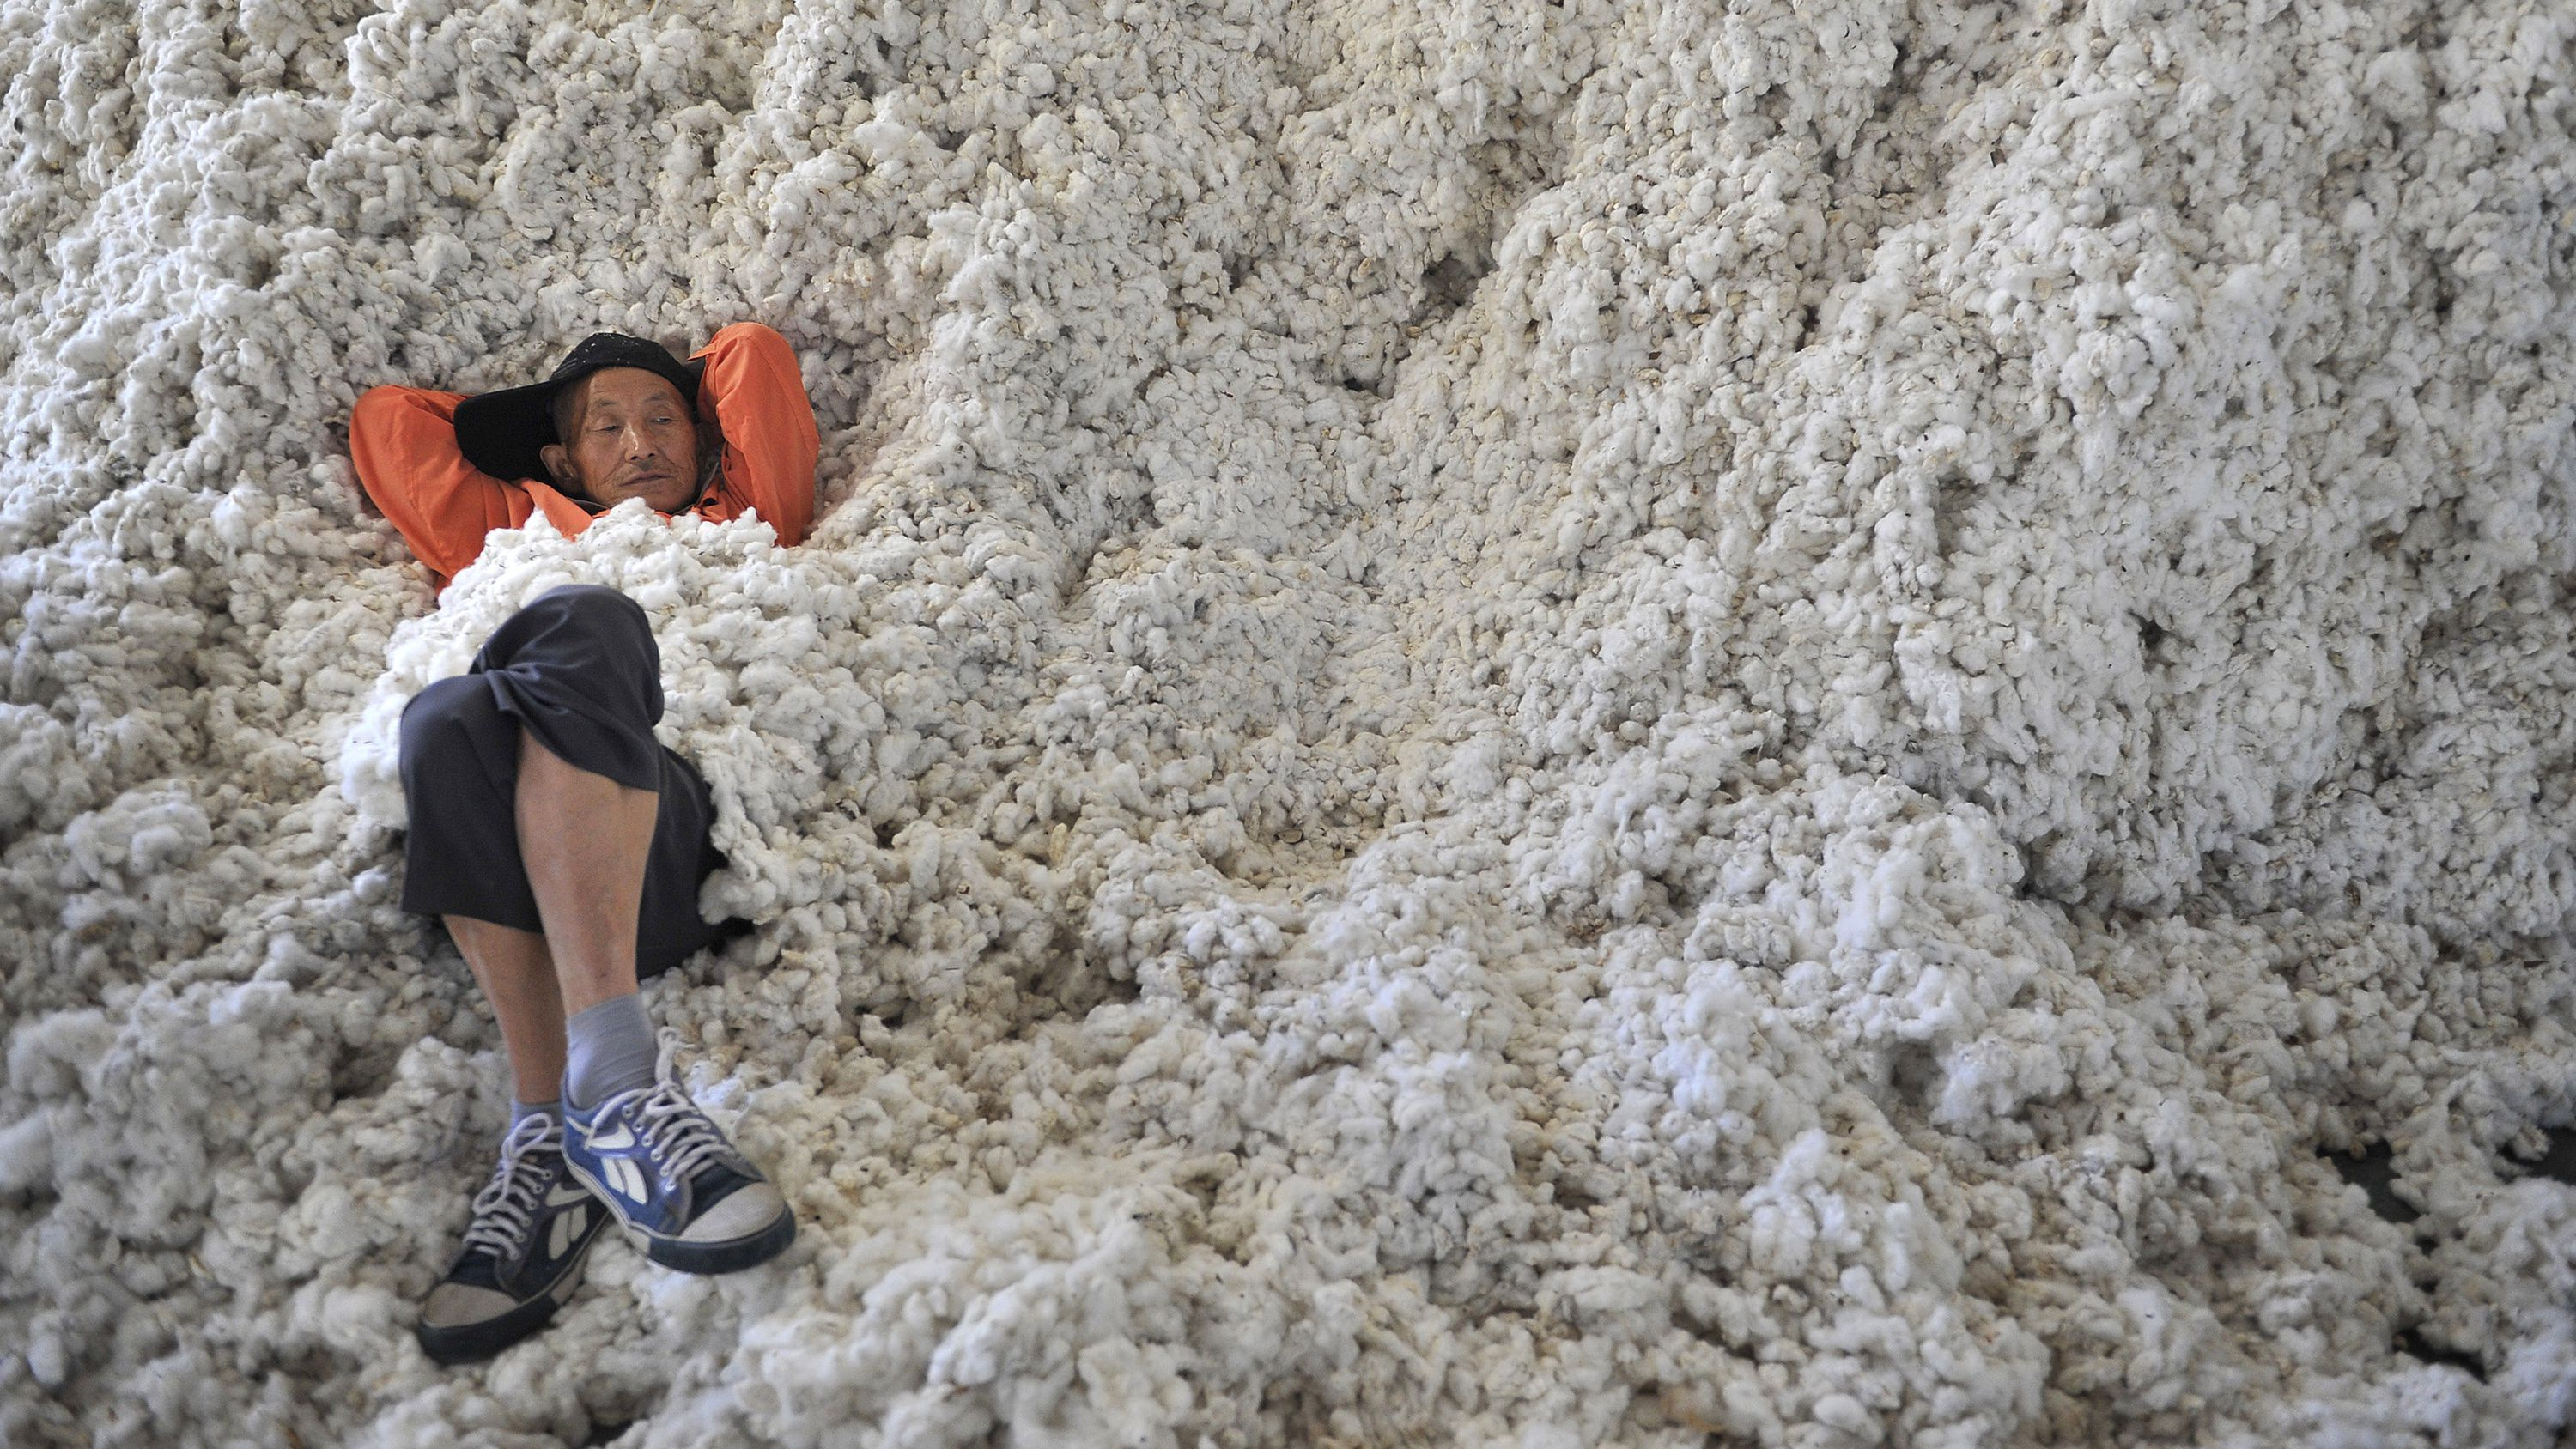 A worker rests on piles of cotton at a ginning factory in Wuhu, Anhui province, October 4, 2013. China, the world's top wheat and rice consumer, will issue low-tariff import quotas for key grains and cotton in 2014 at the same level as it allocated this year, keeping a lid on imports of lower-priced overseas imports, the National Development and Reform Commission (NDRC) said on Friday.